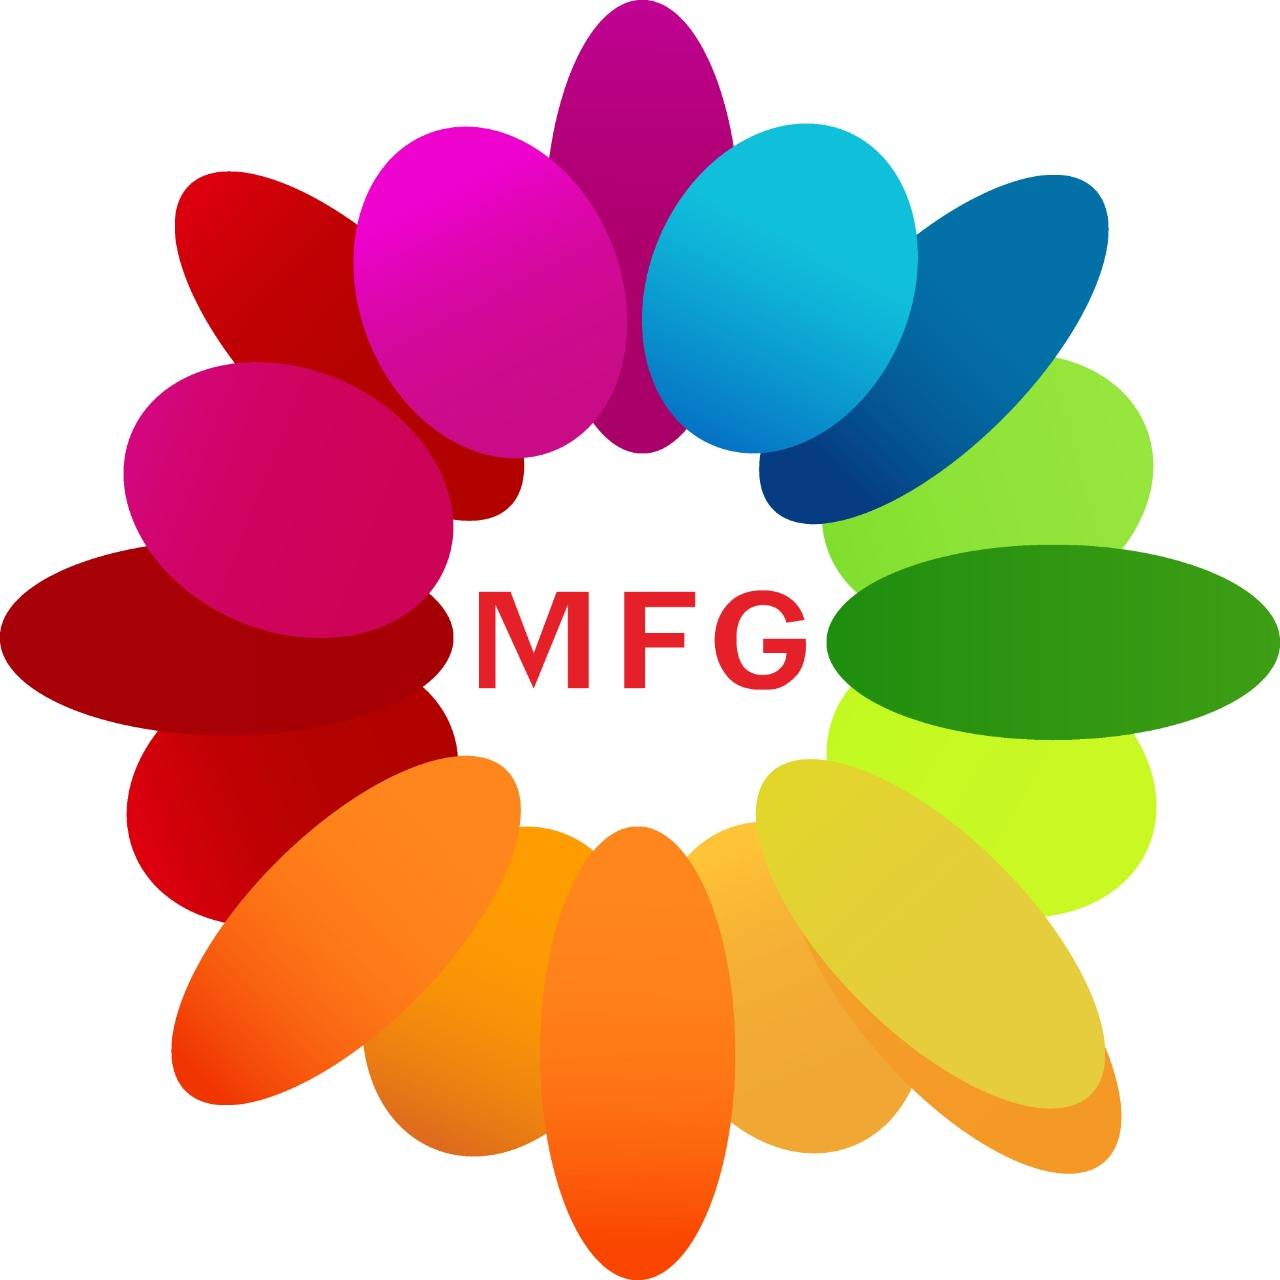 3 Kgs Fruit Basket With Flower Arrangement Myflowergift